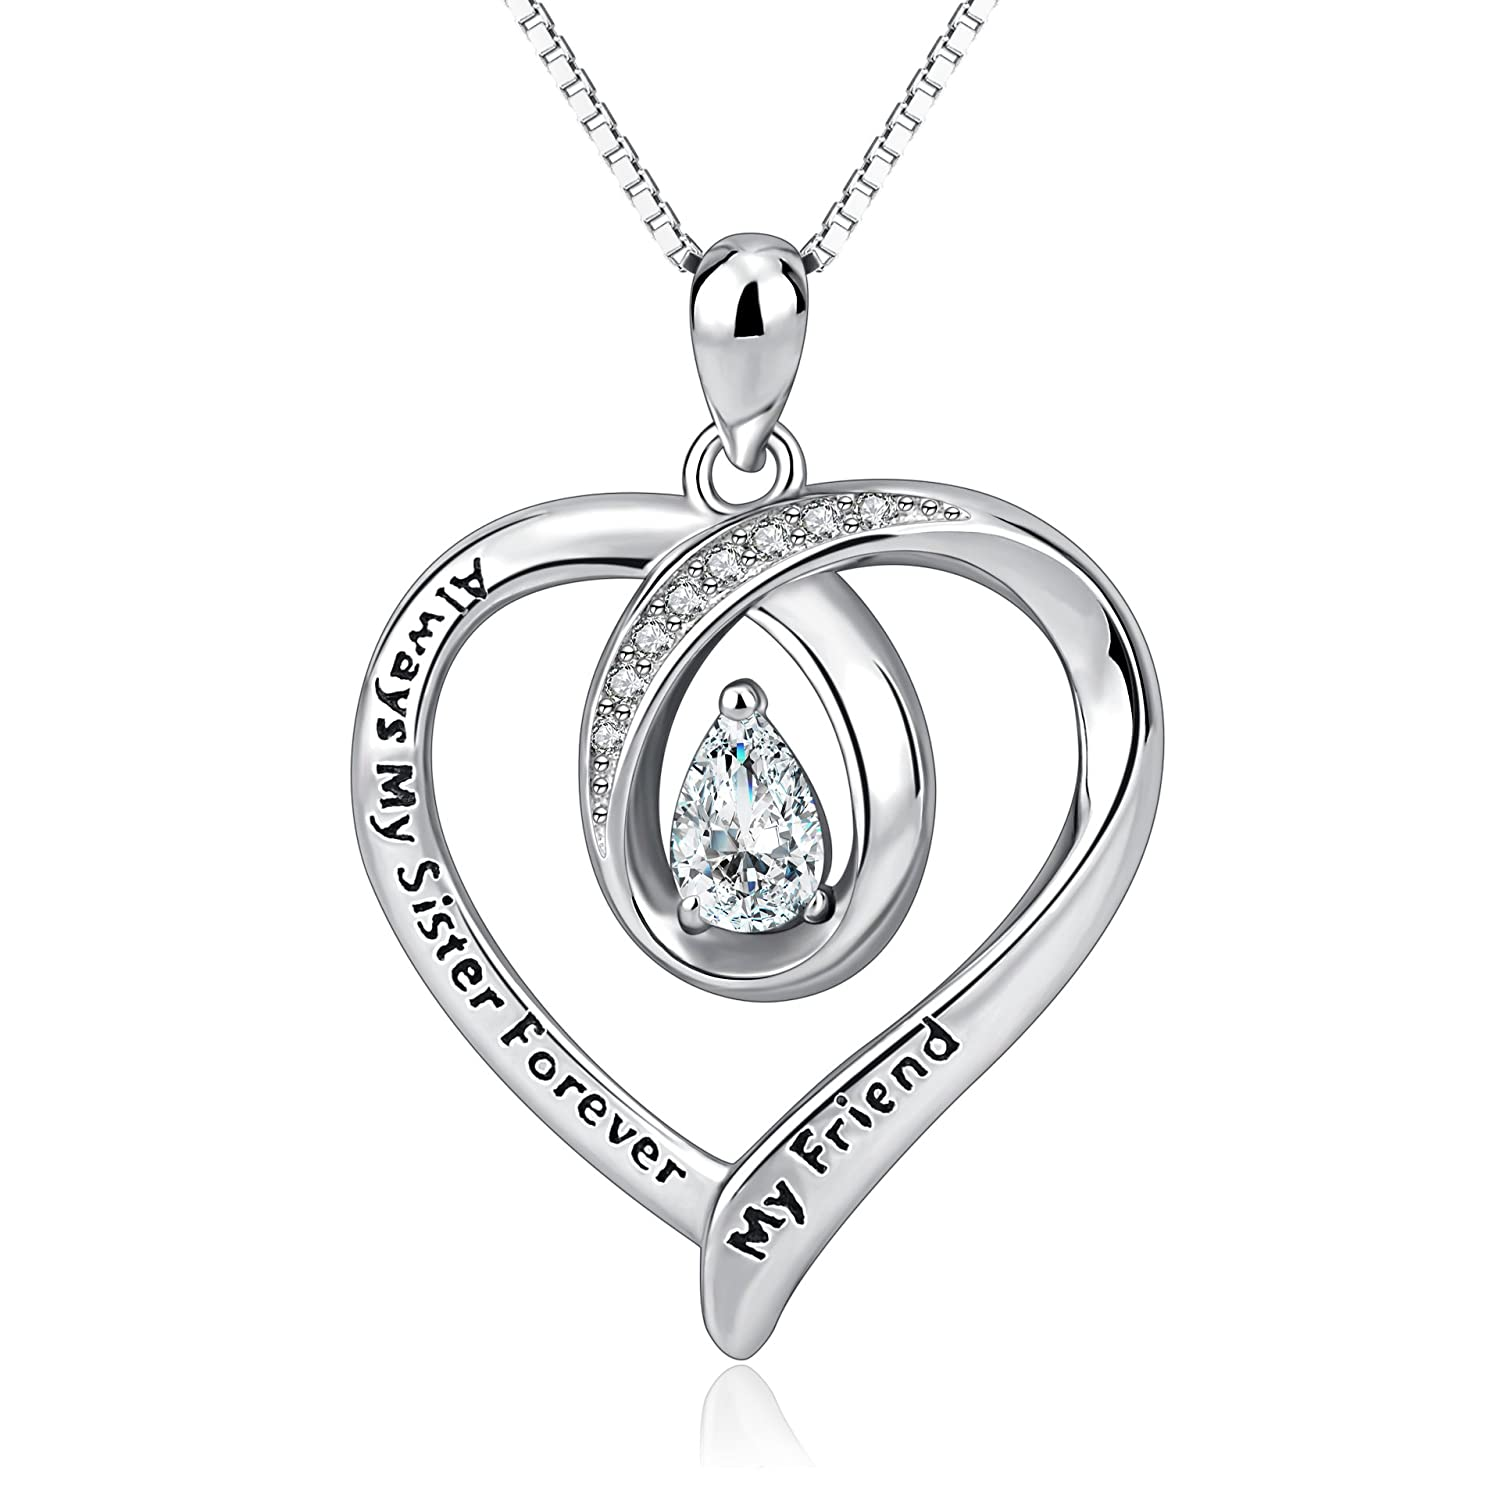 AOBOCO Sisters Necklace Sterling Silver Always My Sister Forever My Friend Love Heart Pendant Necklace Women Jewelry Birthday Gift for Friends